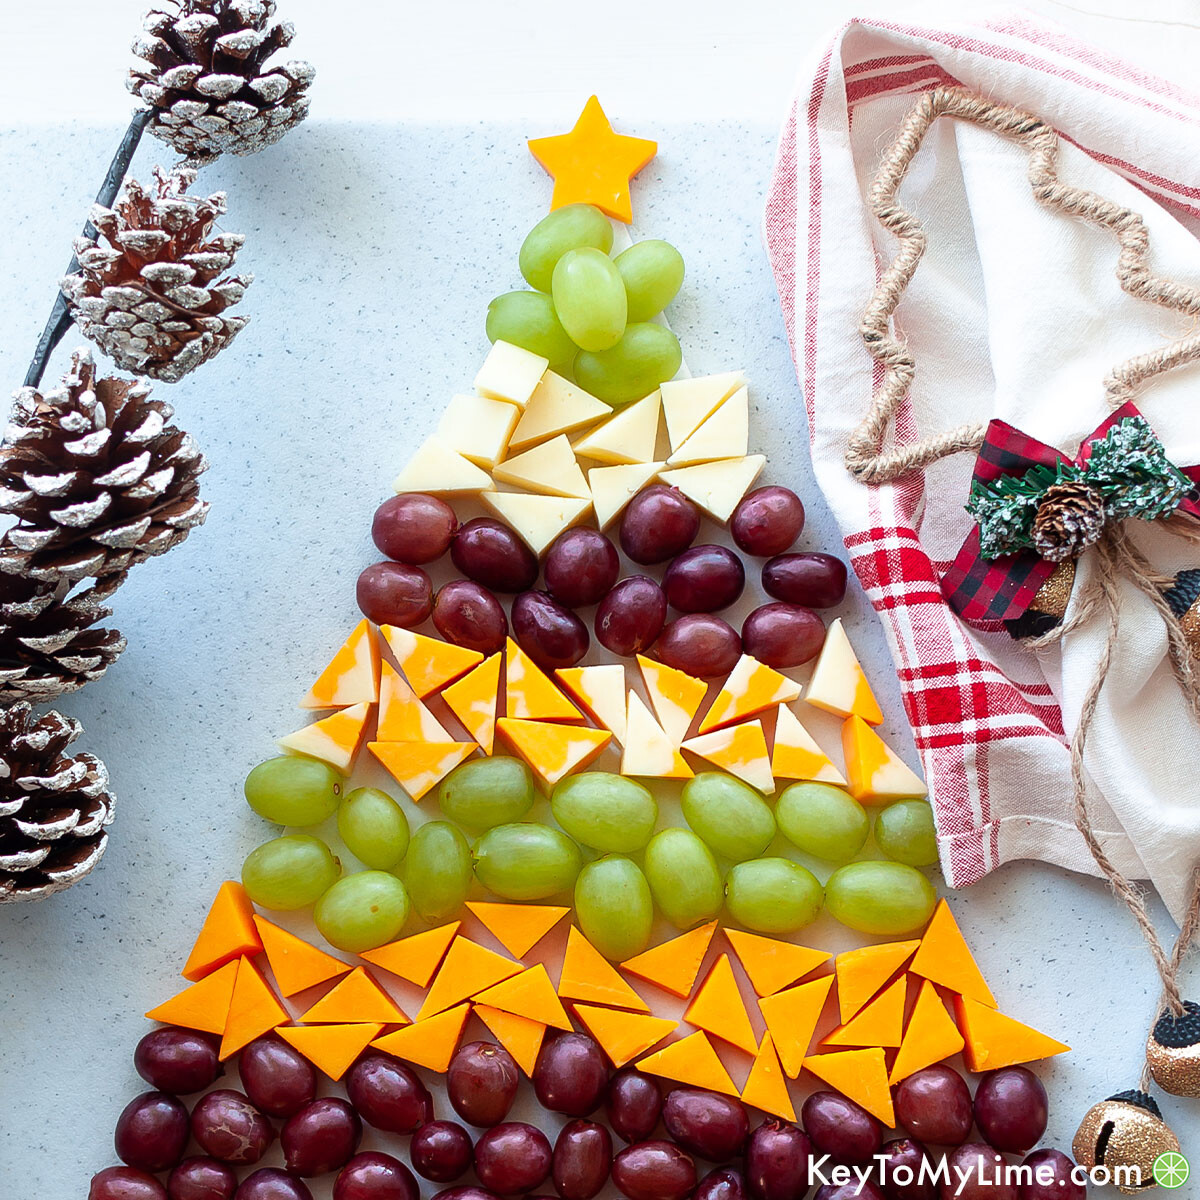 A holiday cheese platter surrounded by pine cones and a red plaid napkin.